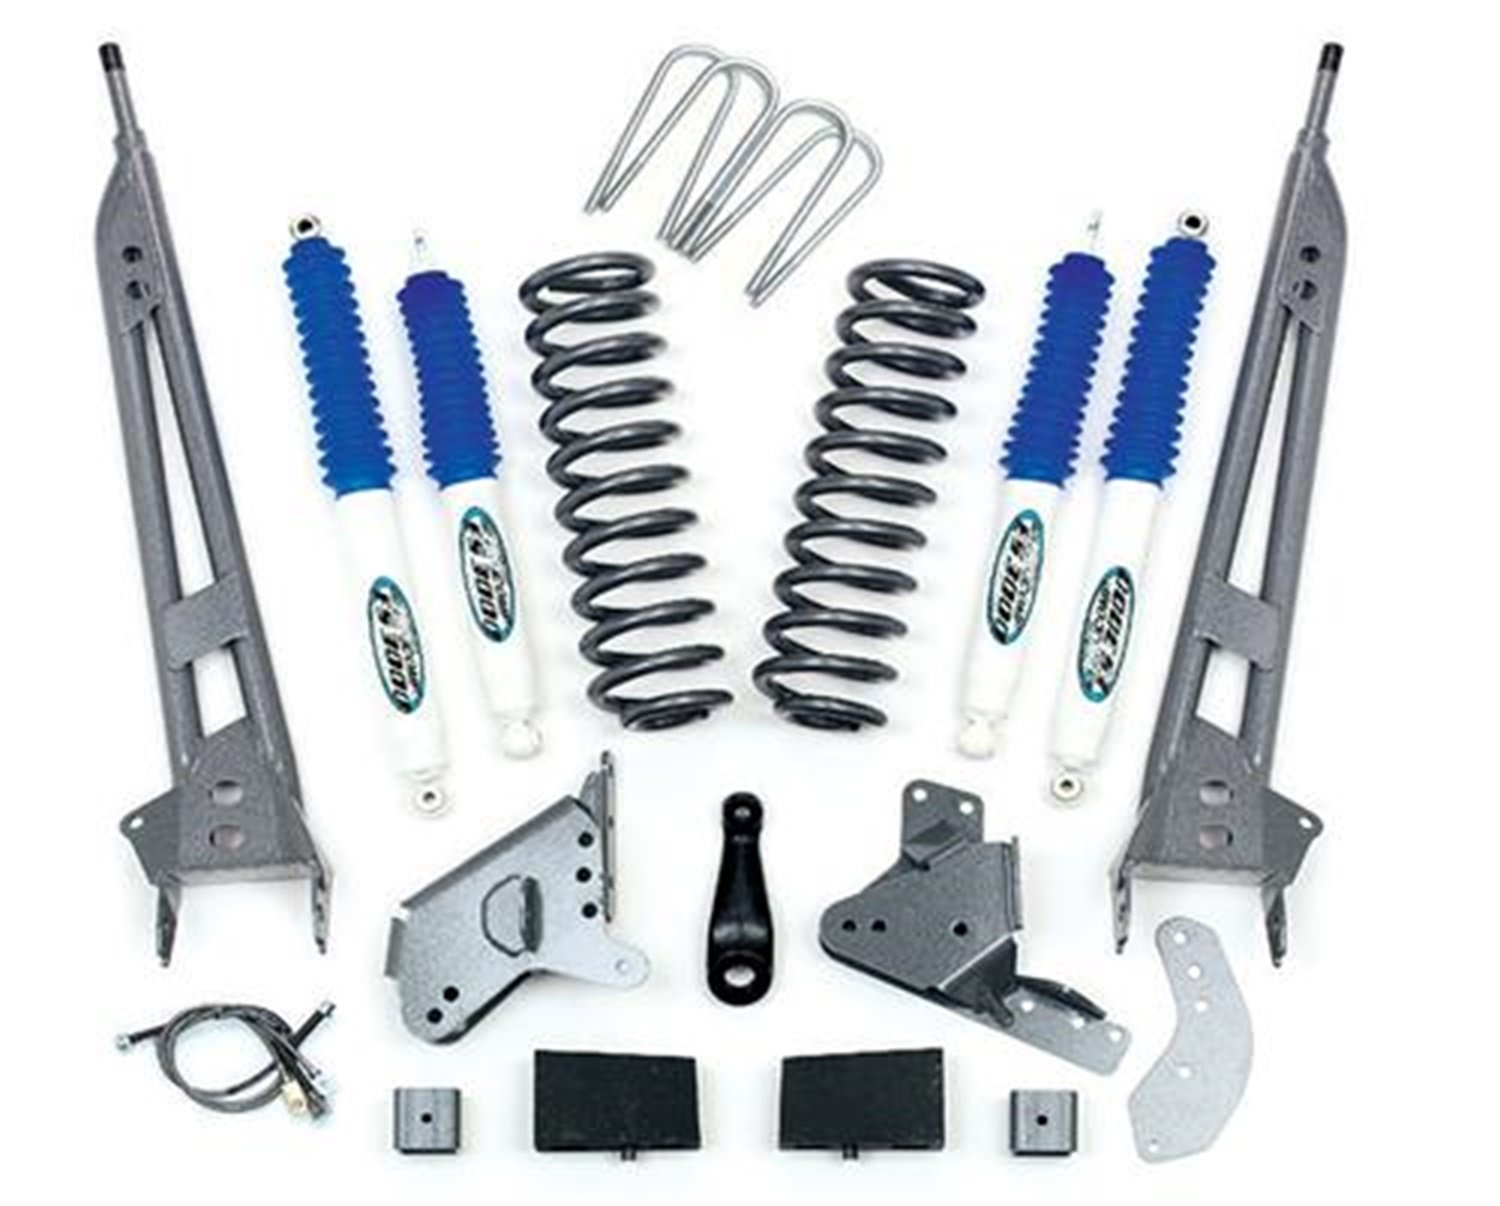 Pro Comp K4064B 6 Stage II Lift Kit with Coil Block and ES3000 Shocks for F150 4WD Standard Cab 90-96